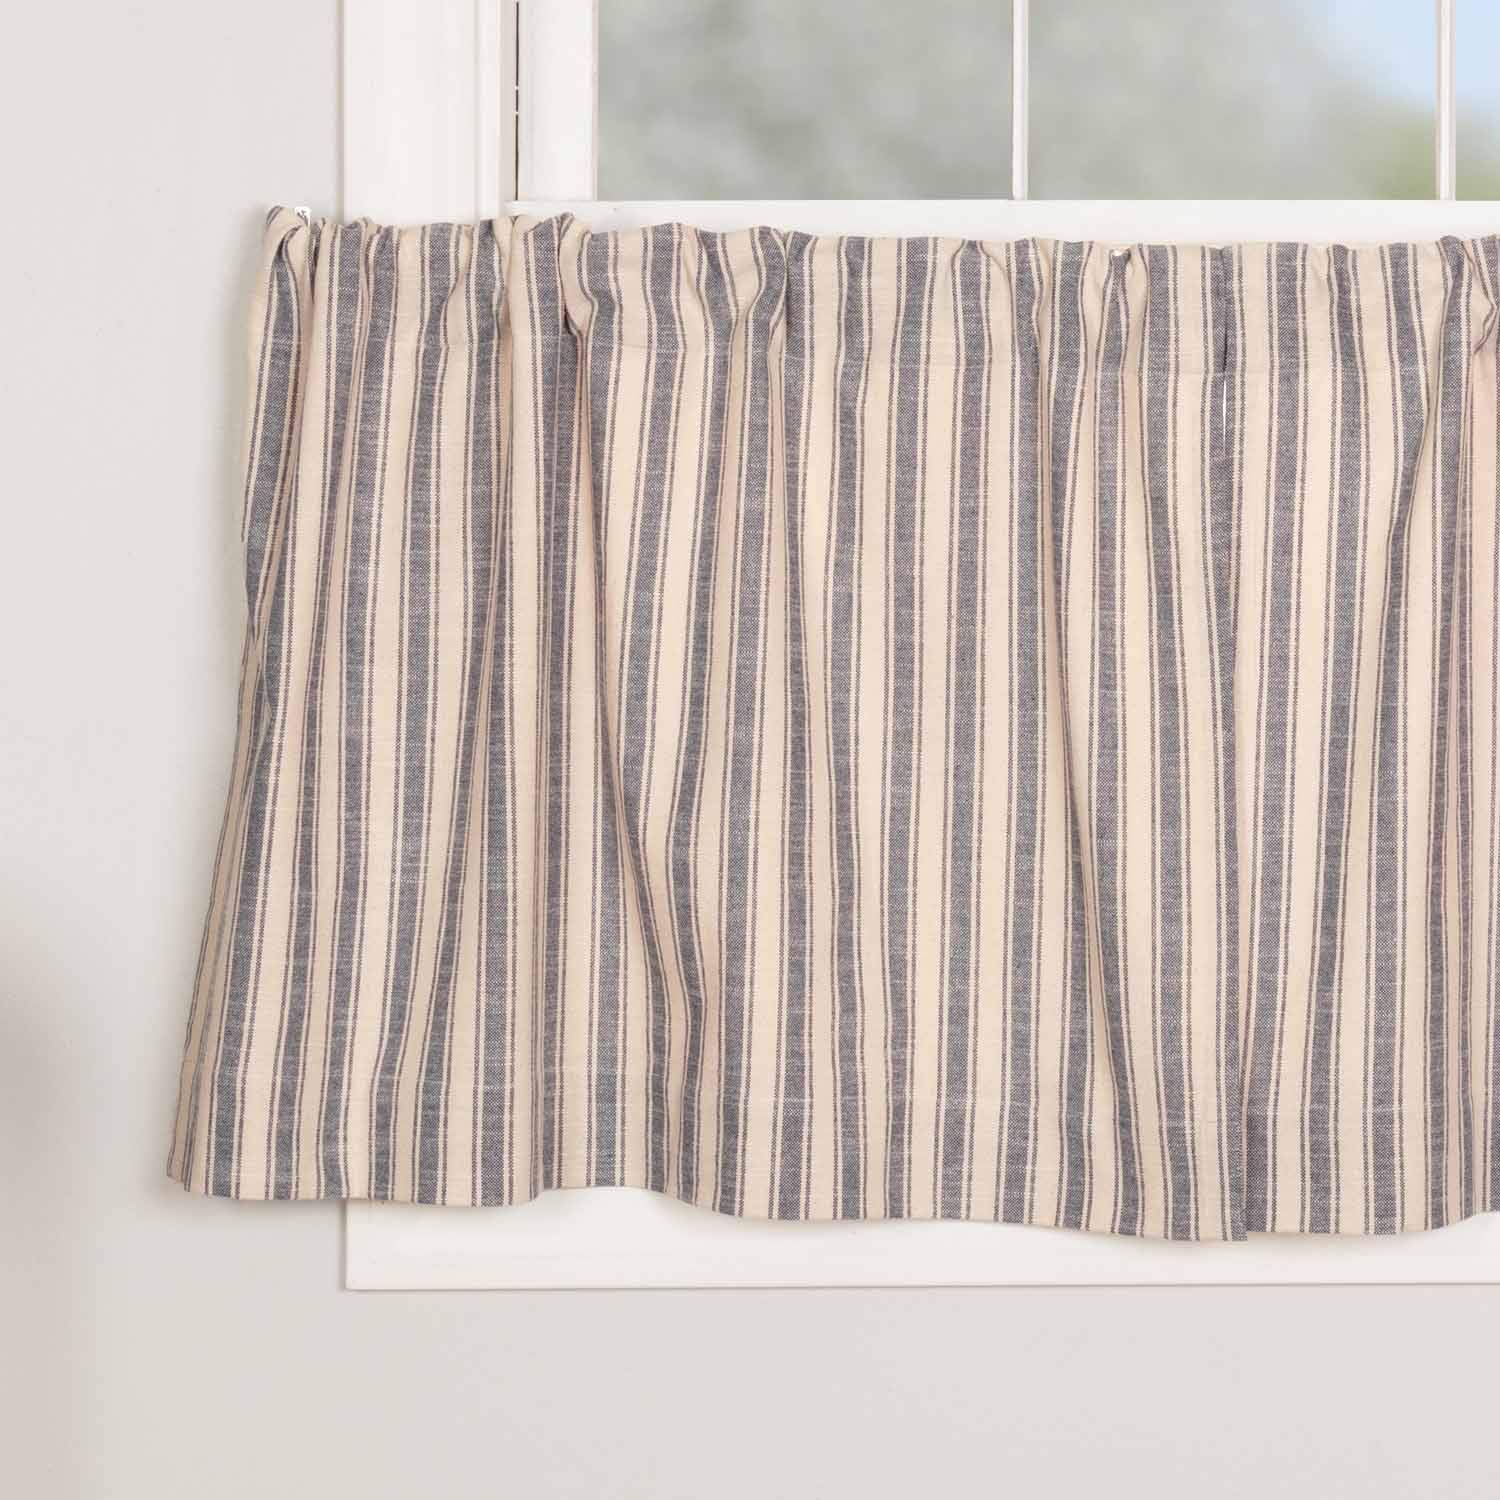 Market Place Blue Ticking Stripe Tier Curtains, Set of 2, 24'' Long, Farmhouse Style Blue & Natural Cream Café Curtains by Piper Classics